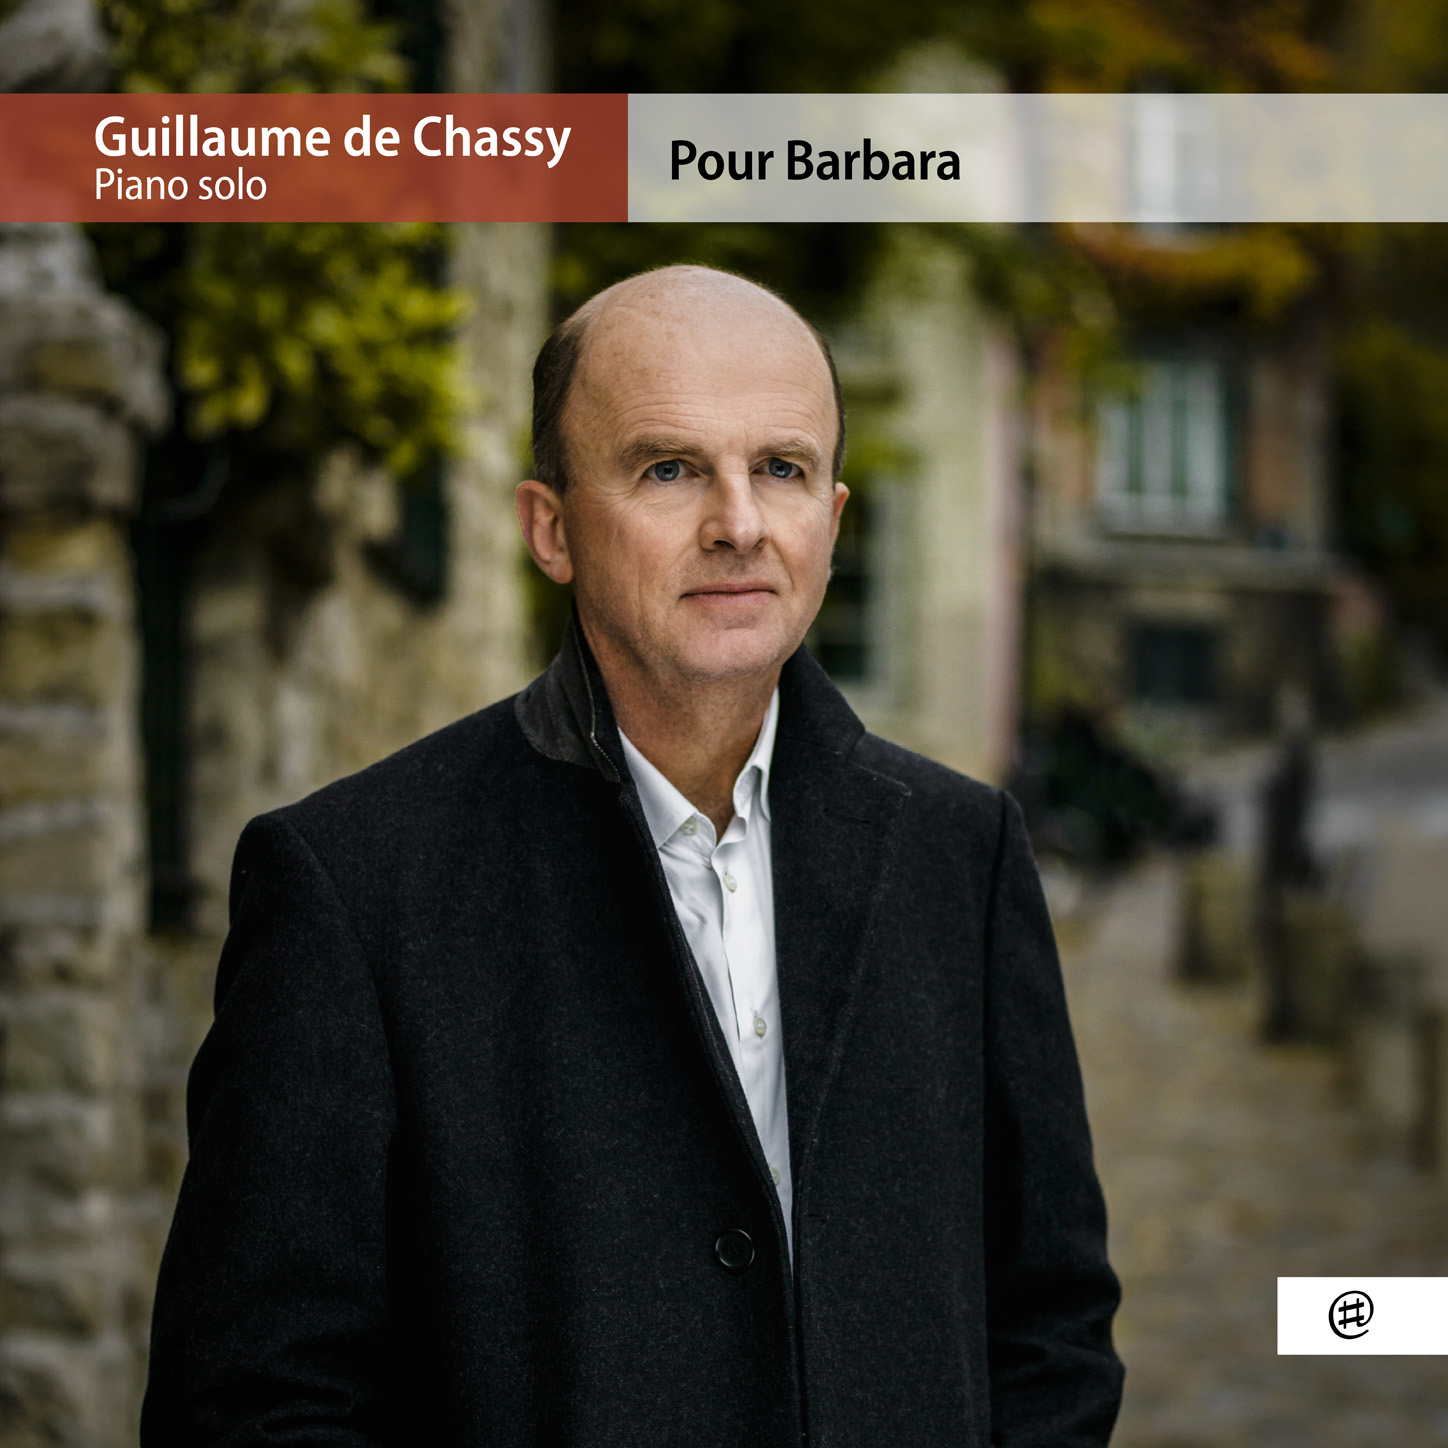 Pour Barbara - Guillaume de Chassy